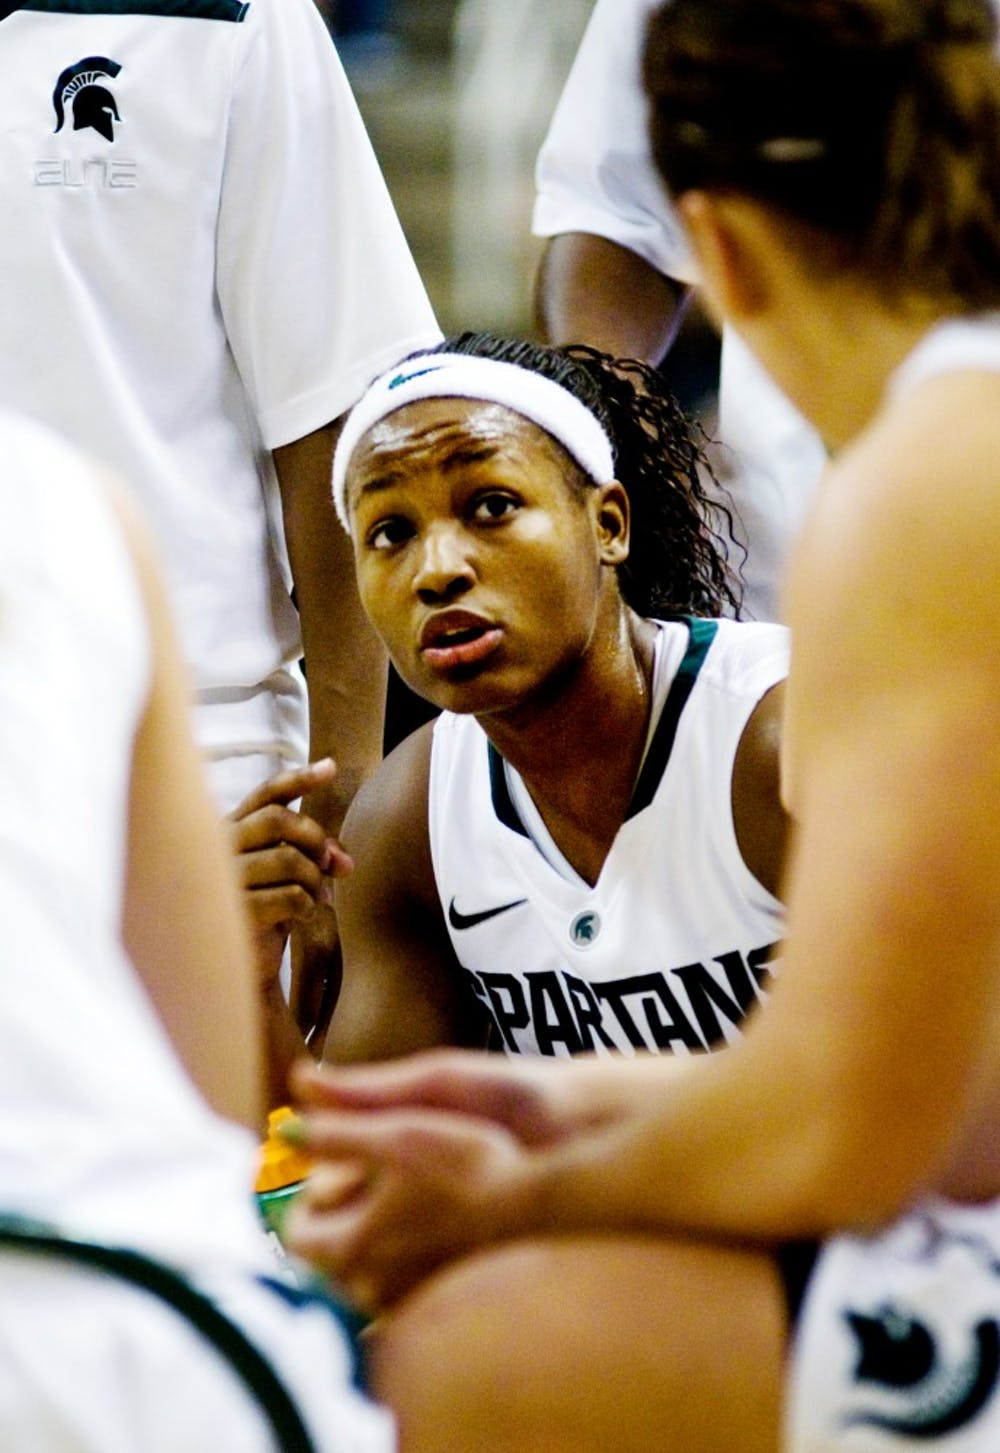 Freshman guard Kiana Johnson talks to her Michigan State teammates during a timeout Wednesday night at Breslin Center. The Spartans defeated the Wolverines 60-55. Aaron Snyder/The State News